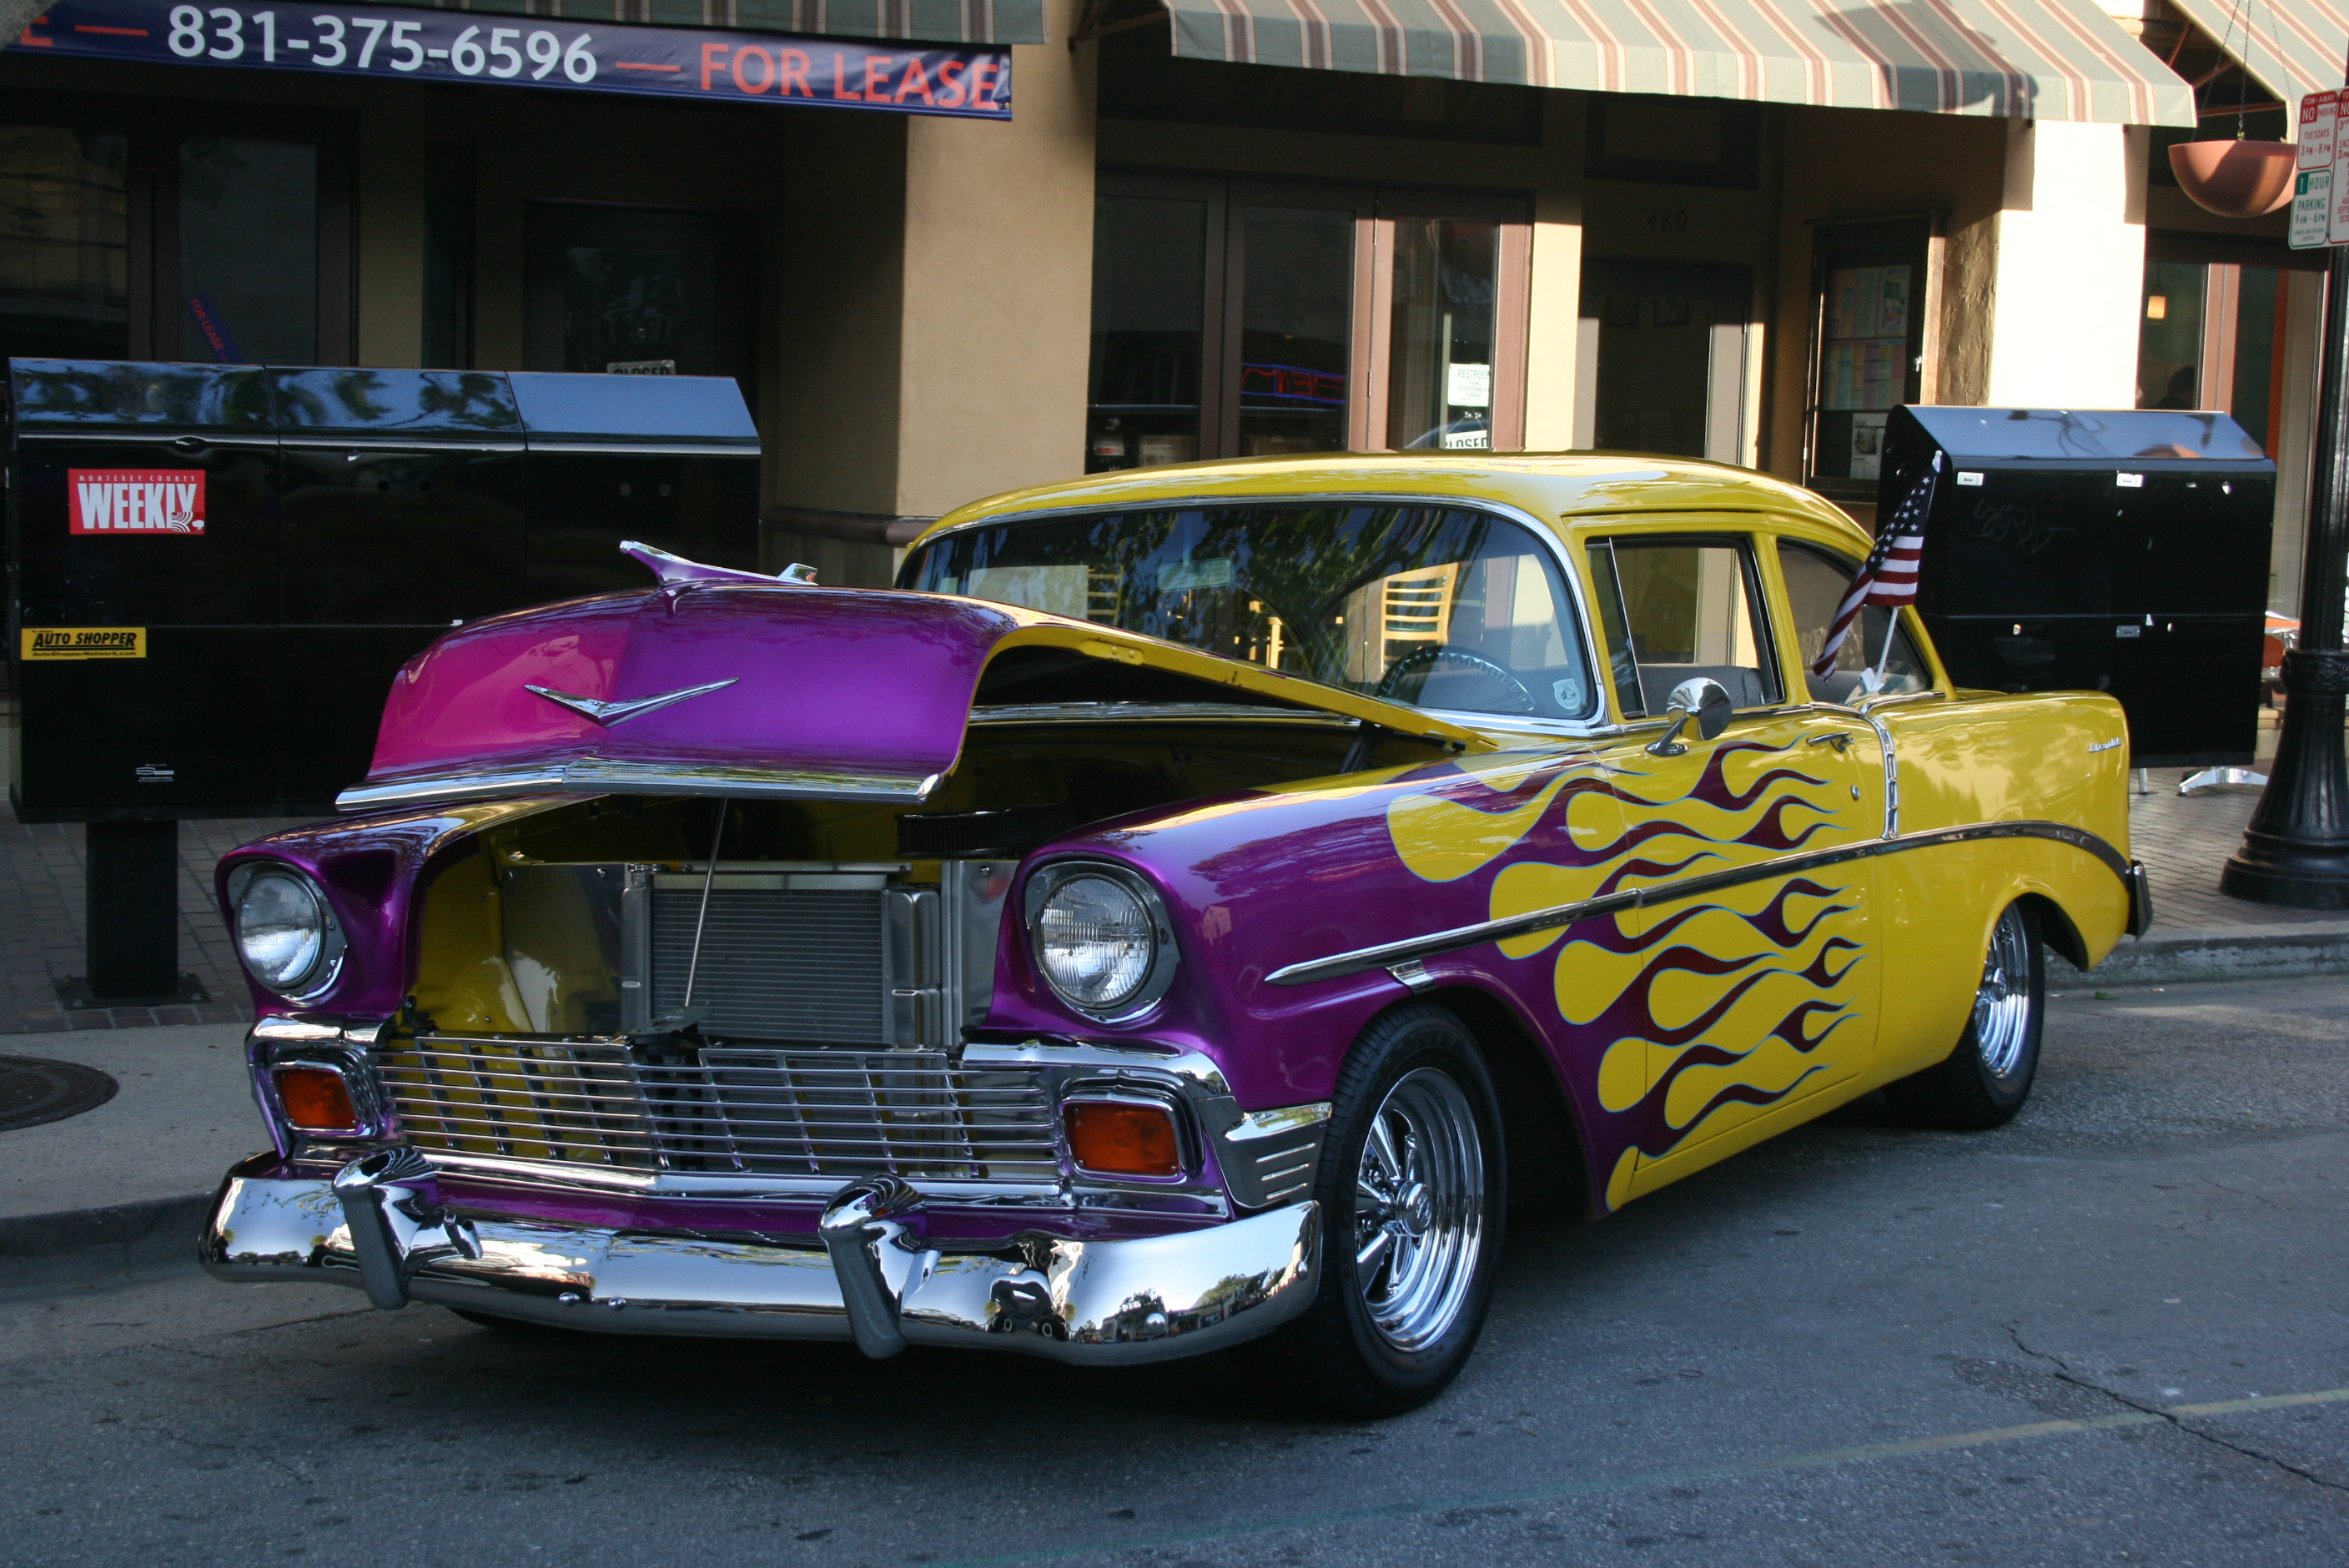 File:Hot Rod and Custom Car meet, Monterey - Flickr - Supermac1961 ...